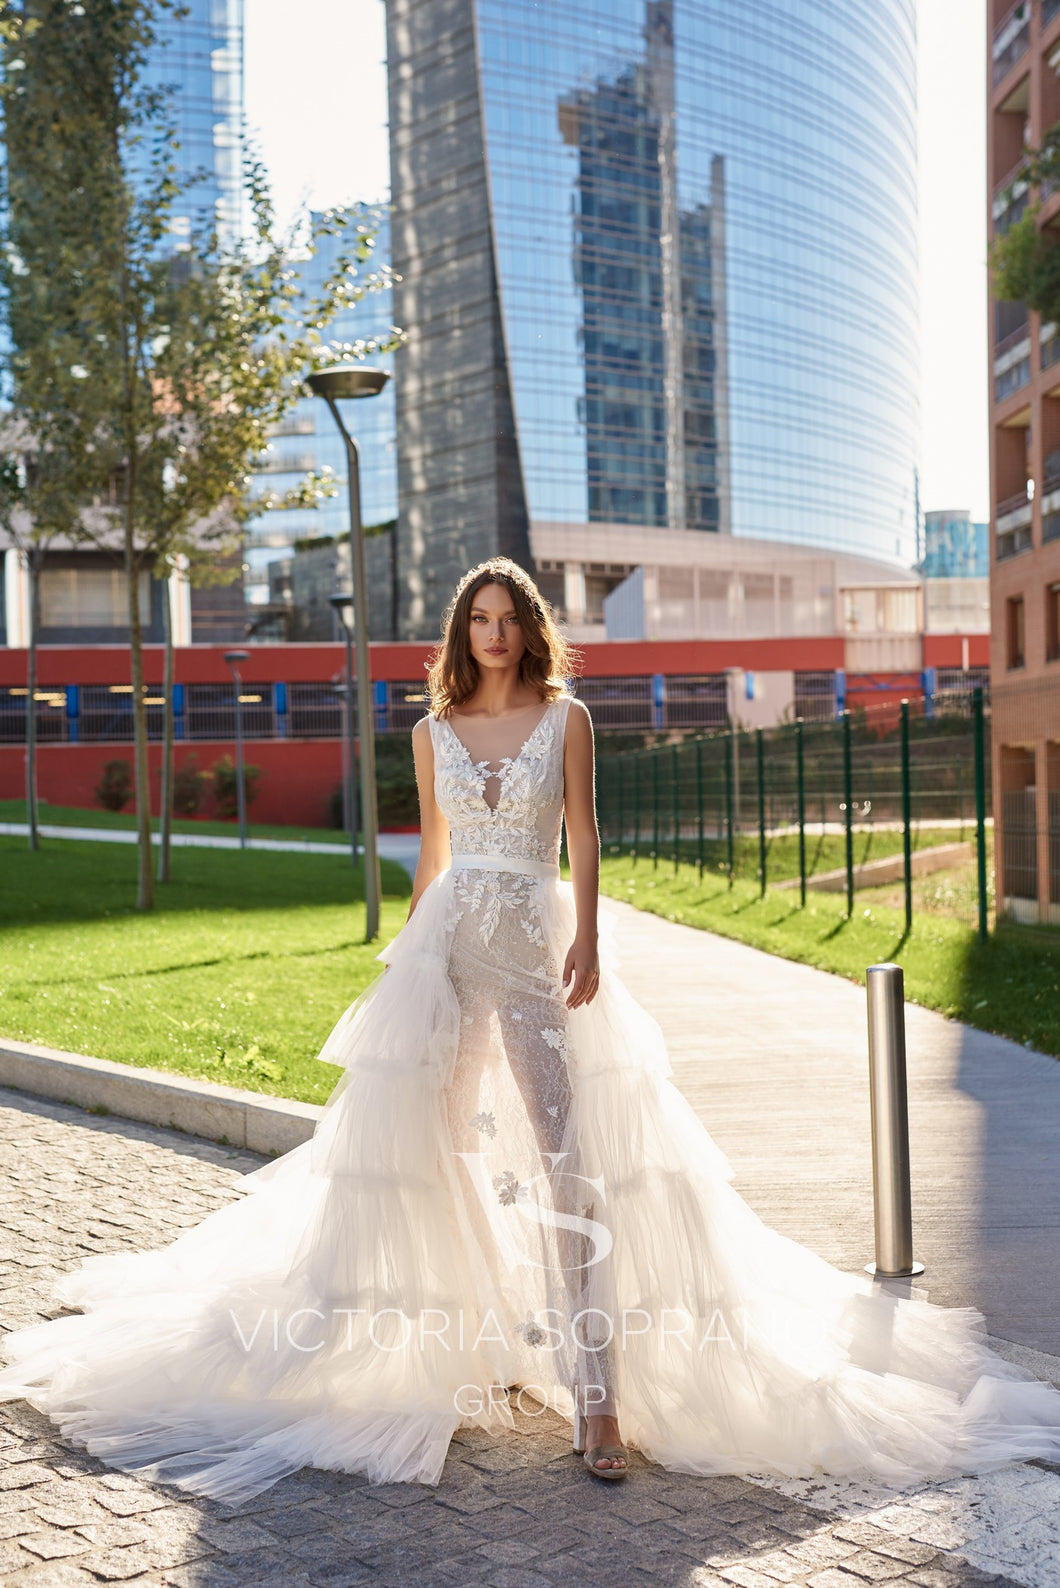 Star of Milan 'Afina' Victoria Soprano RTW 23220-320 Ready To Wear European Bridal Wedding Gown Designer Philippines